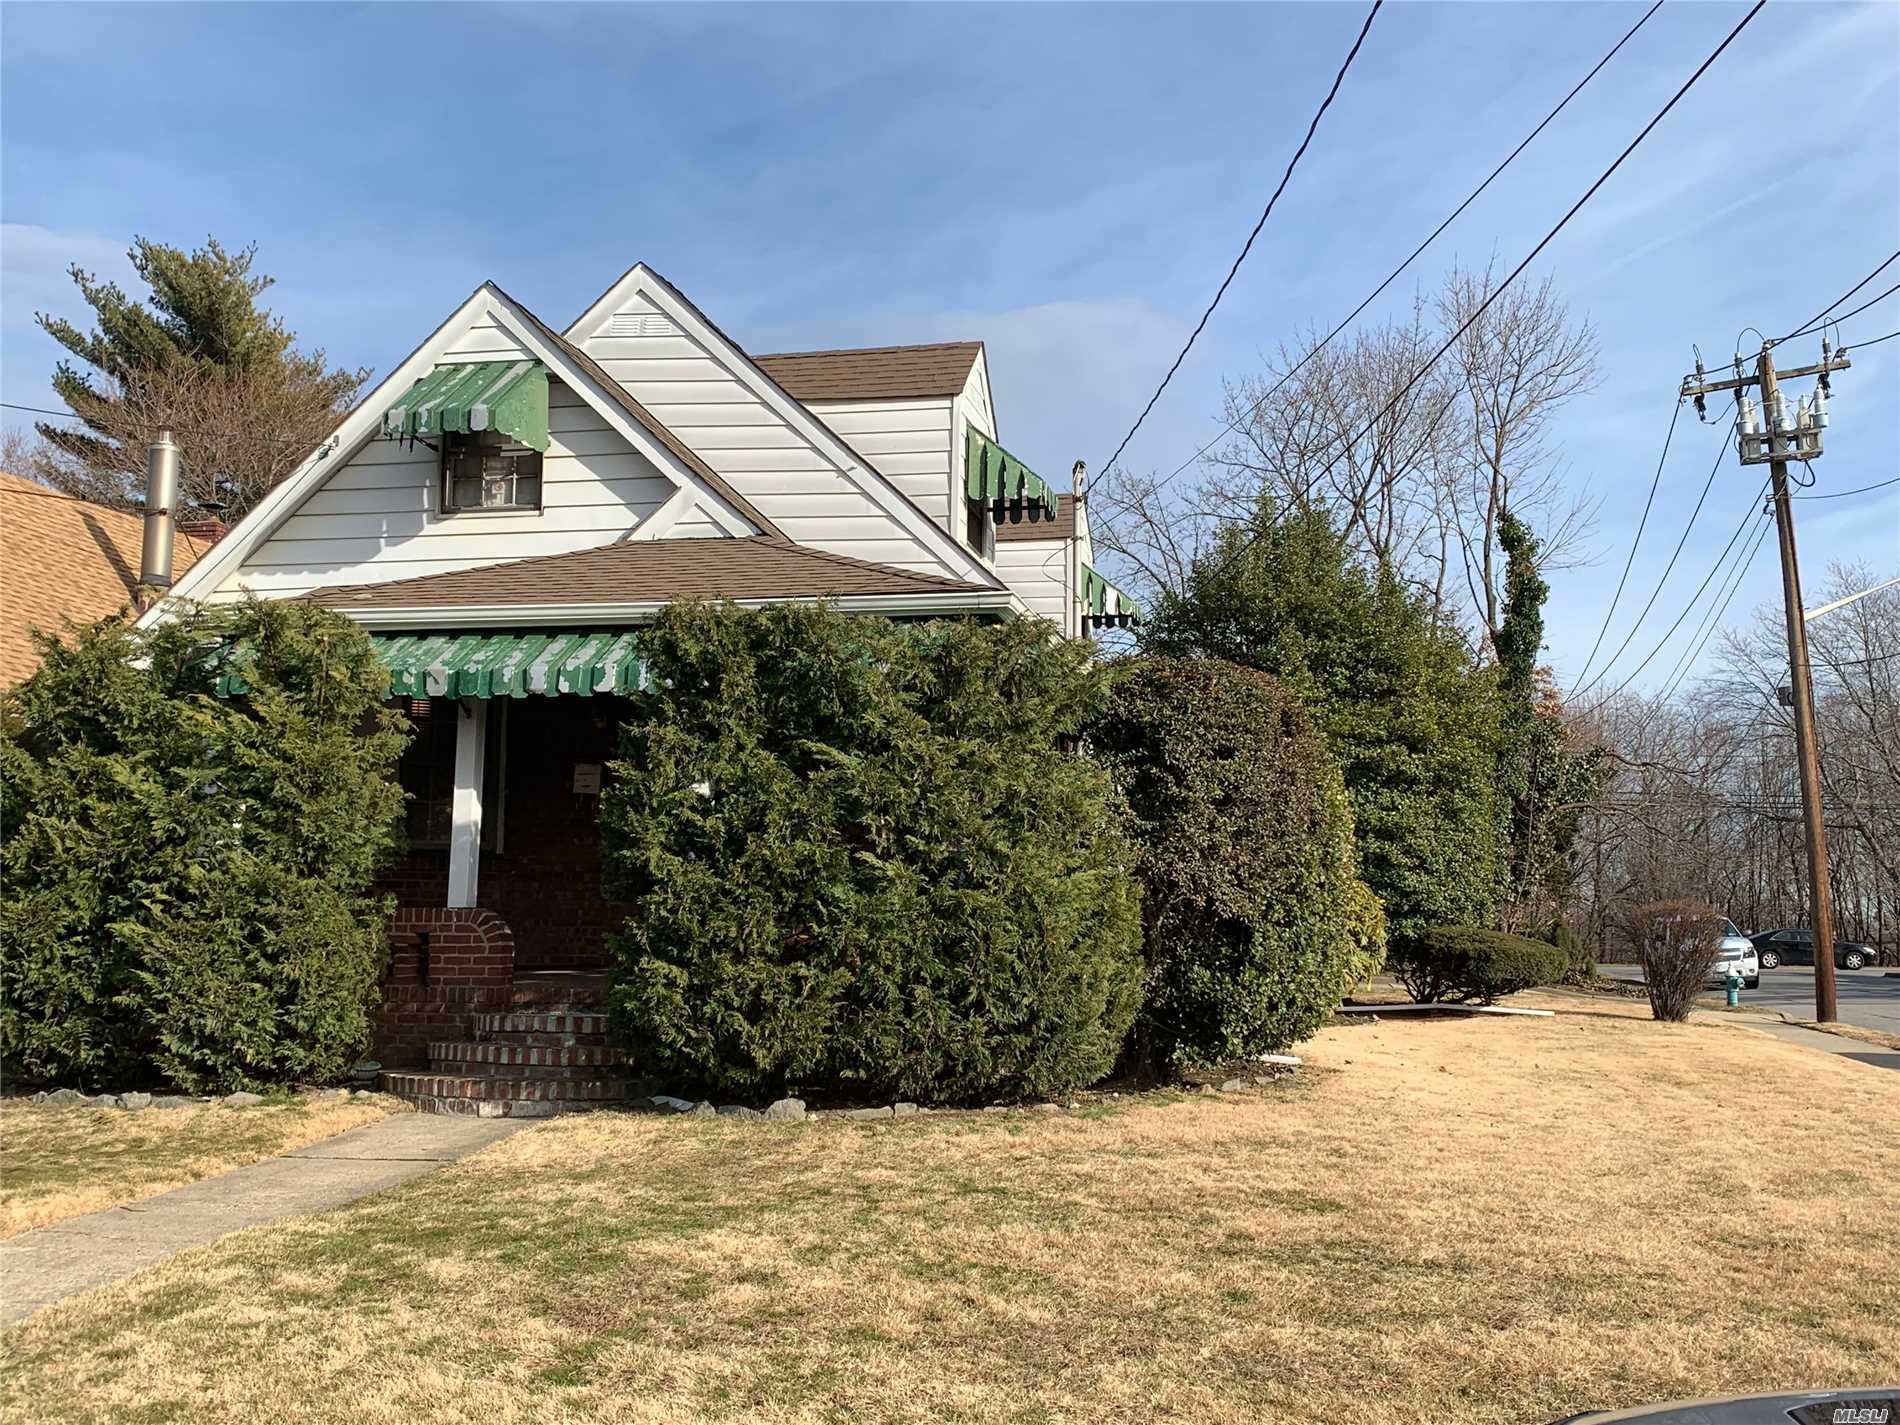 Needs Work, Great Location, Corner Property With Plenty Of Parking, 4 Big Bedrooms, 2 Full Baths Including One In The Finished Basement With Side Entrance Priced To Sell, Won't Last!